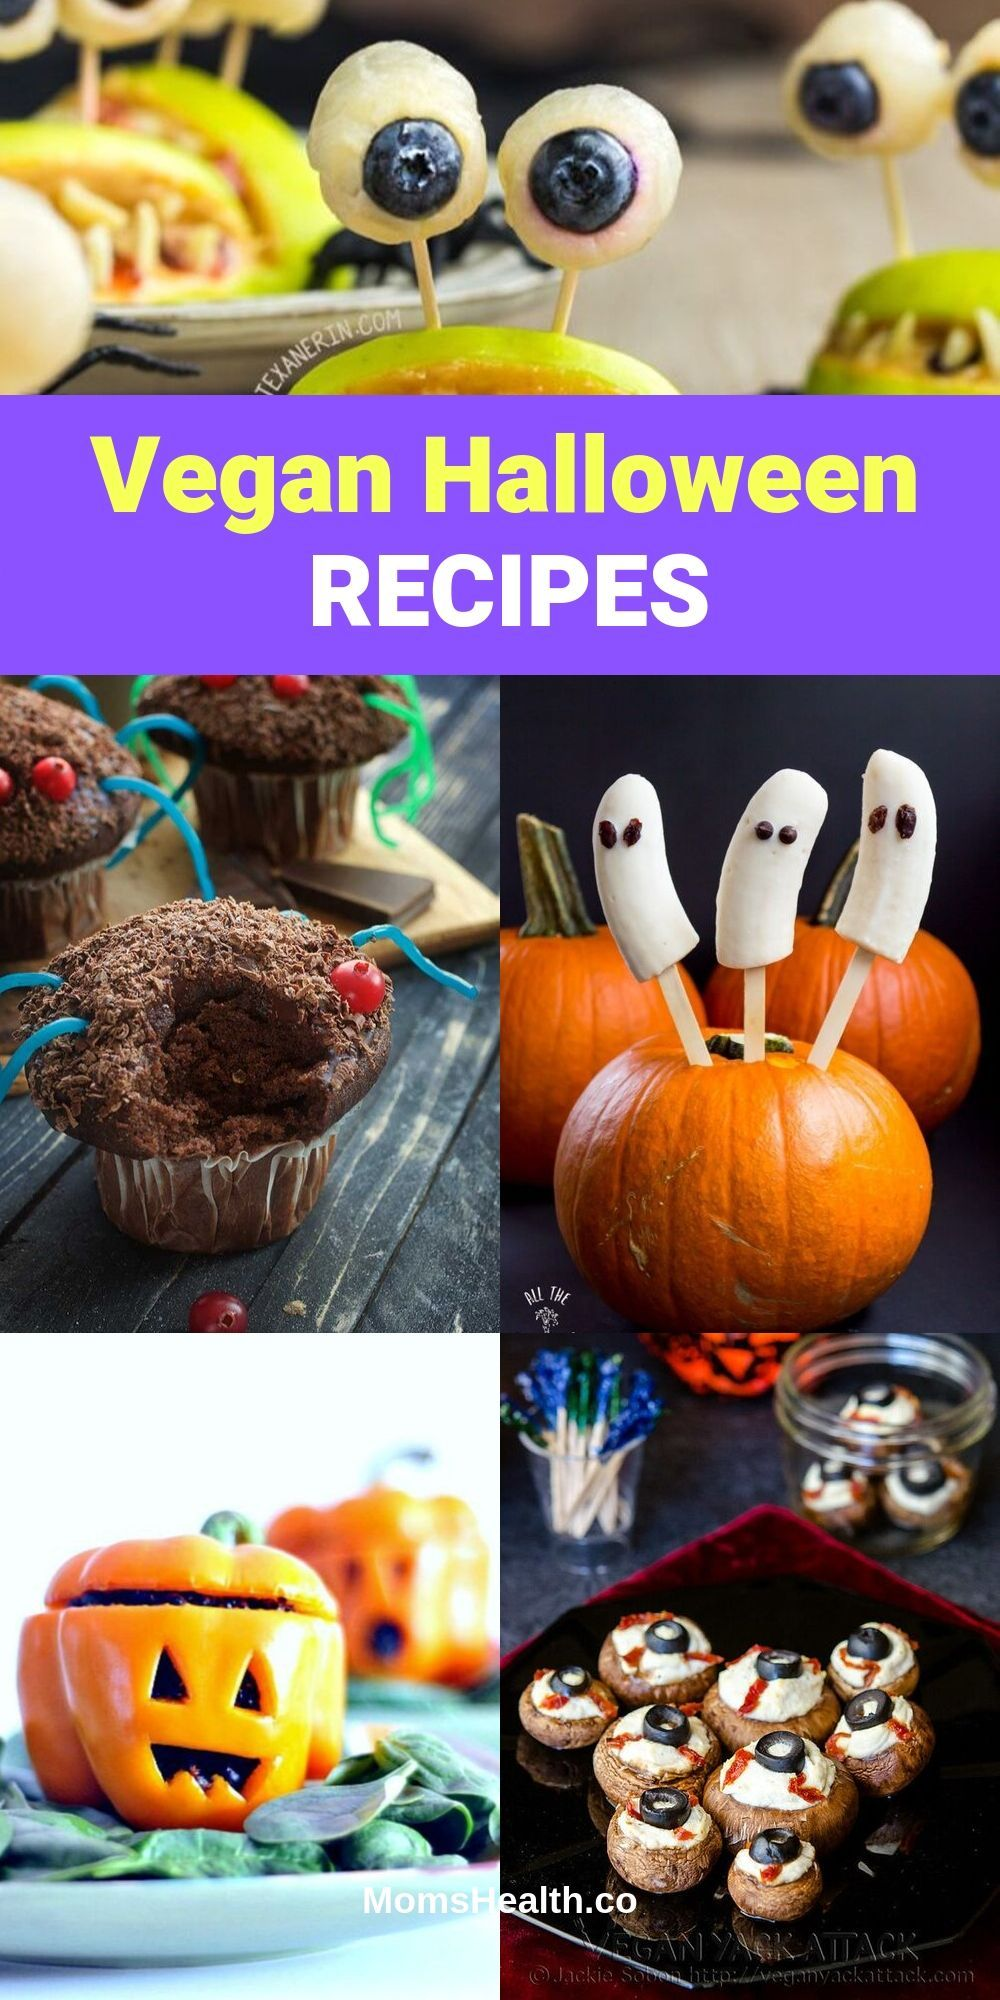 15 Vegan Halloween Recipes - Spooky Vegan Halloween Treats Are you ready for a spooky and fun Halloween night? There is something you might be missing in the list of traditional Halloween party foods - it's some great vegan Halloween recipes! This post will help you add to your table some vegan Halloween treats.#vegan